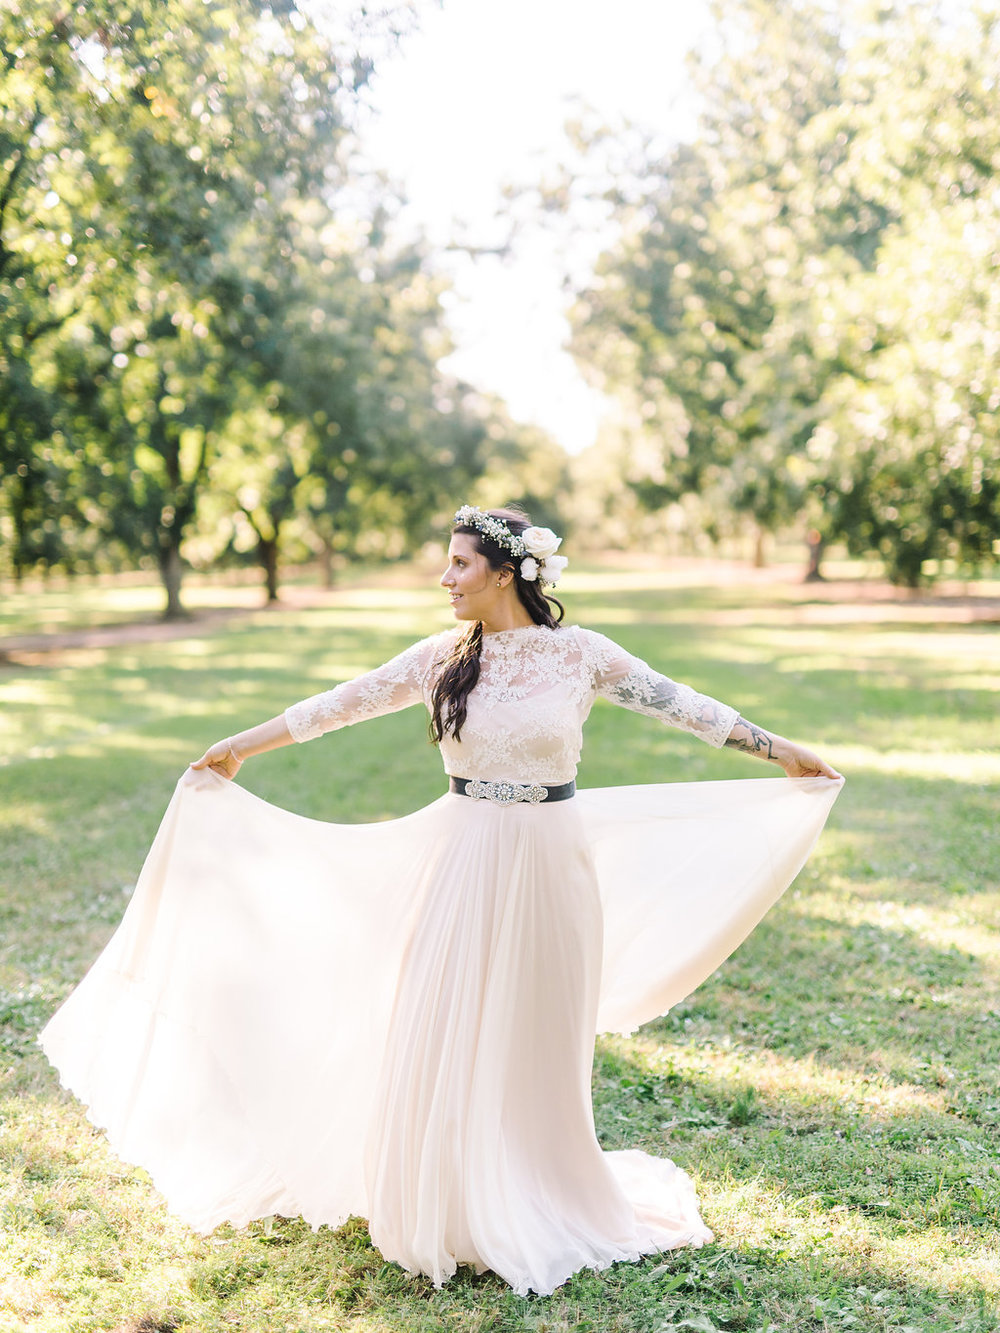 Rachel  wanted something bohemian, whimsical and with sleeves and I love love love the ethereal look she rocked on her wedding day / photo:  Rach Love Troys